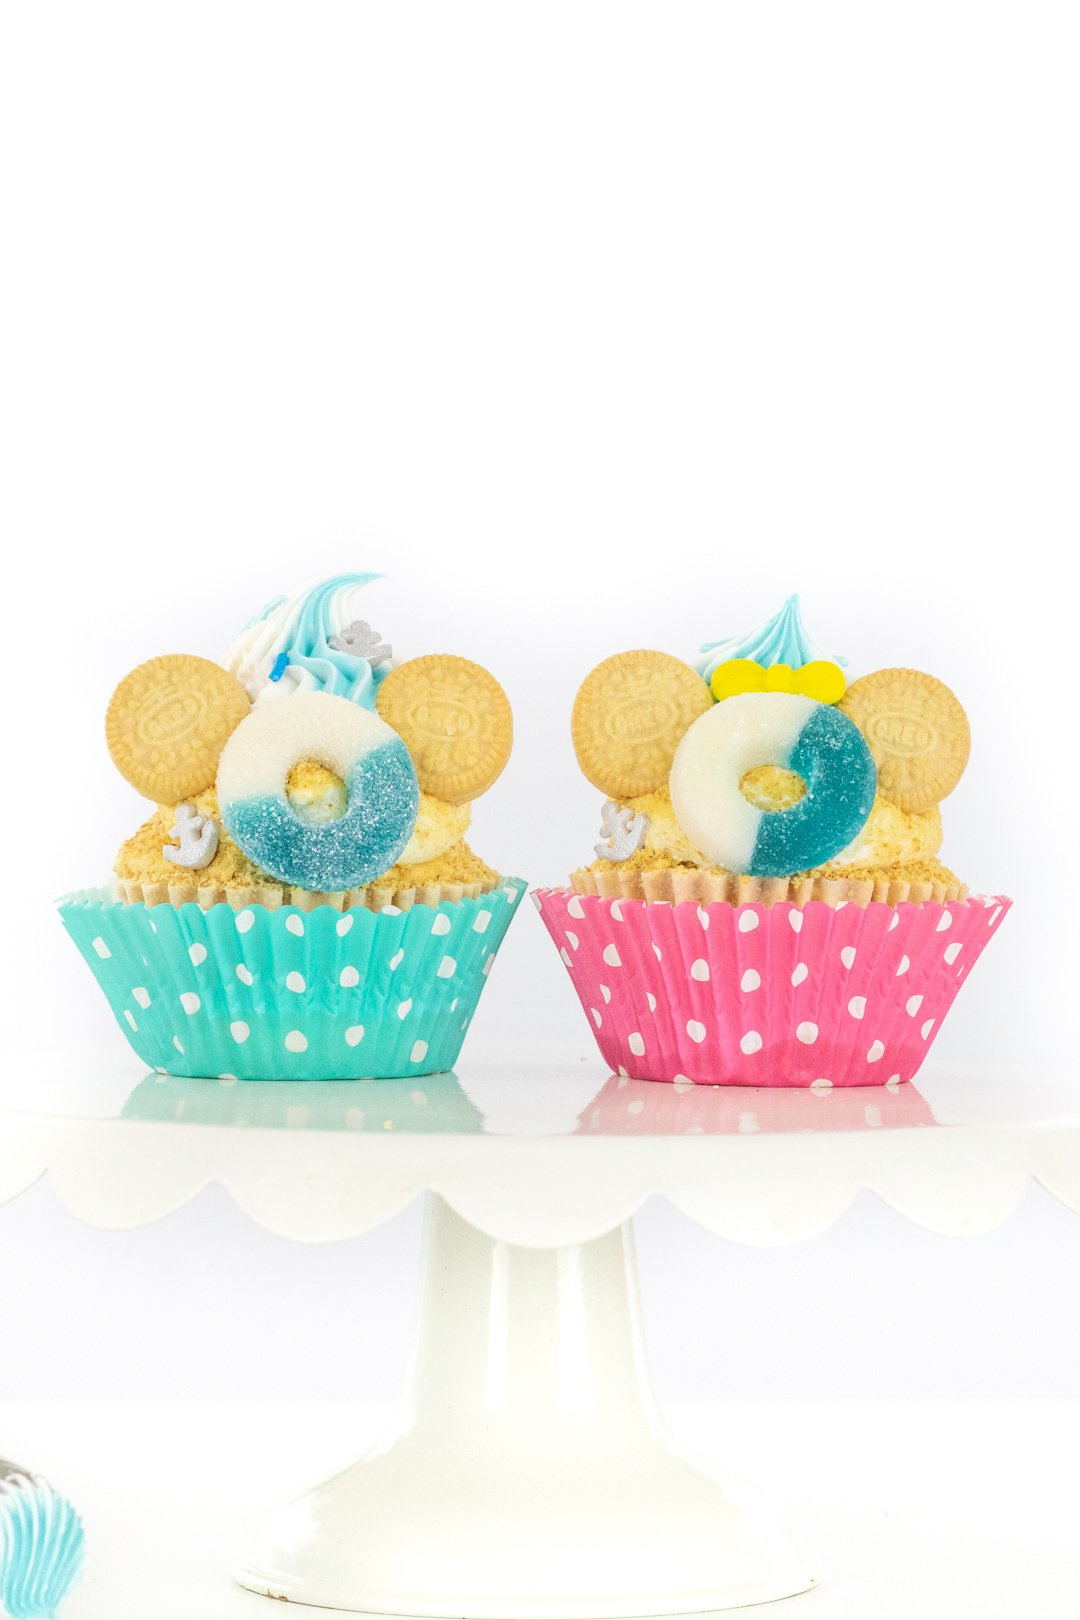 minnie and mickey cupcakes that are inspired by a disney cruise with graham cracker crumbs for sand